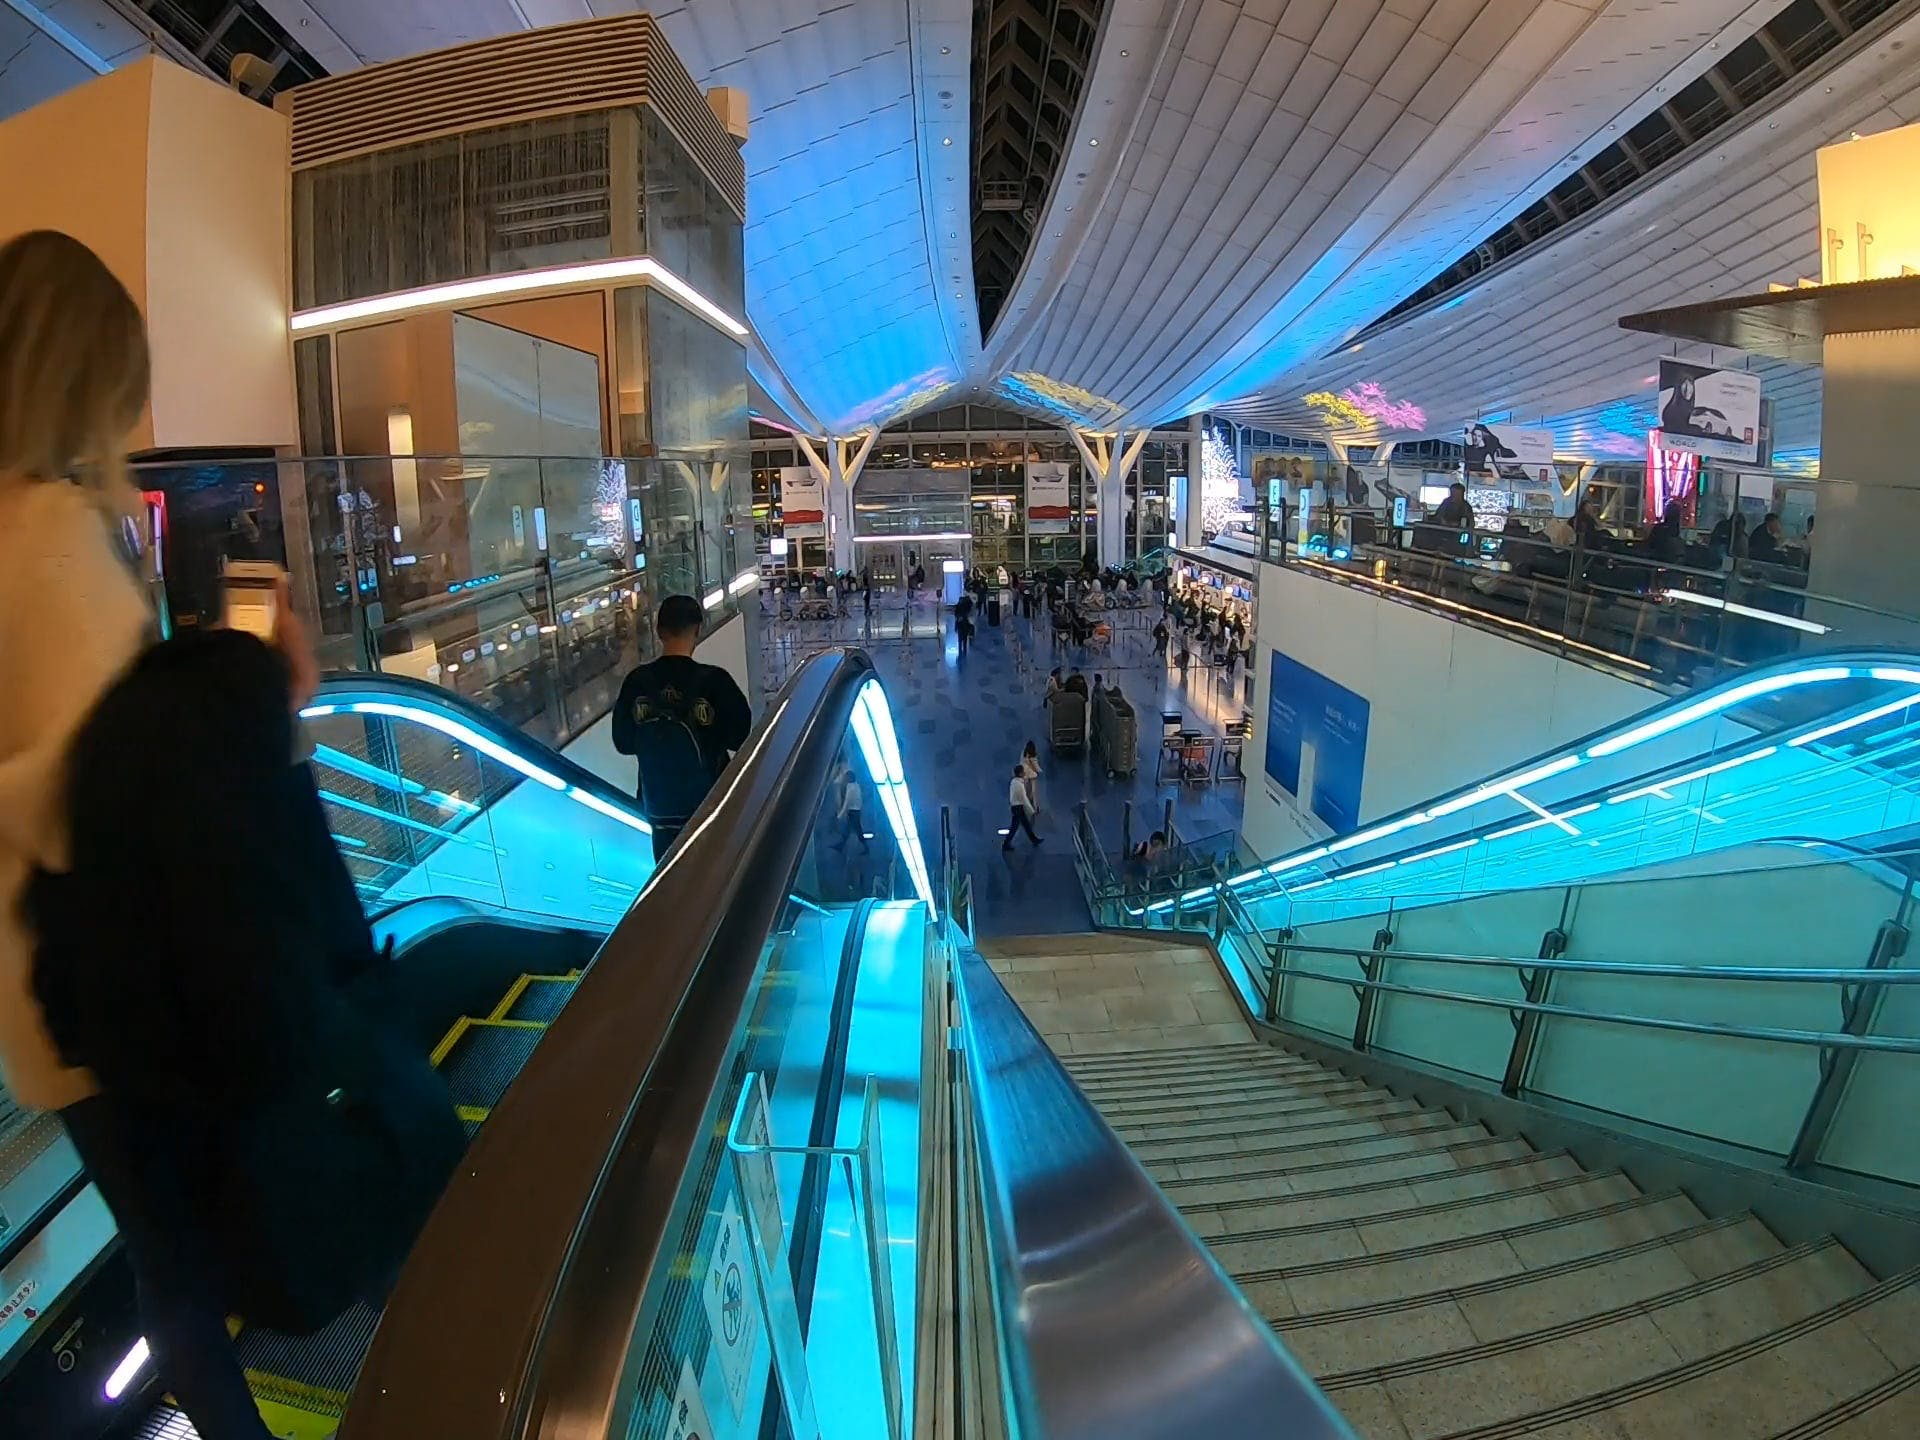 People In A Shopping Center In Timelapse Mode